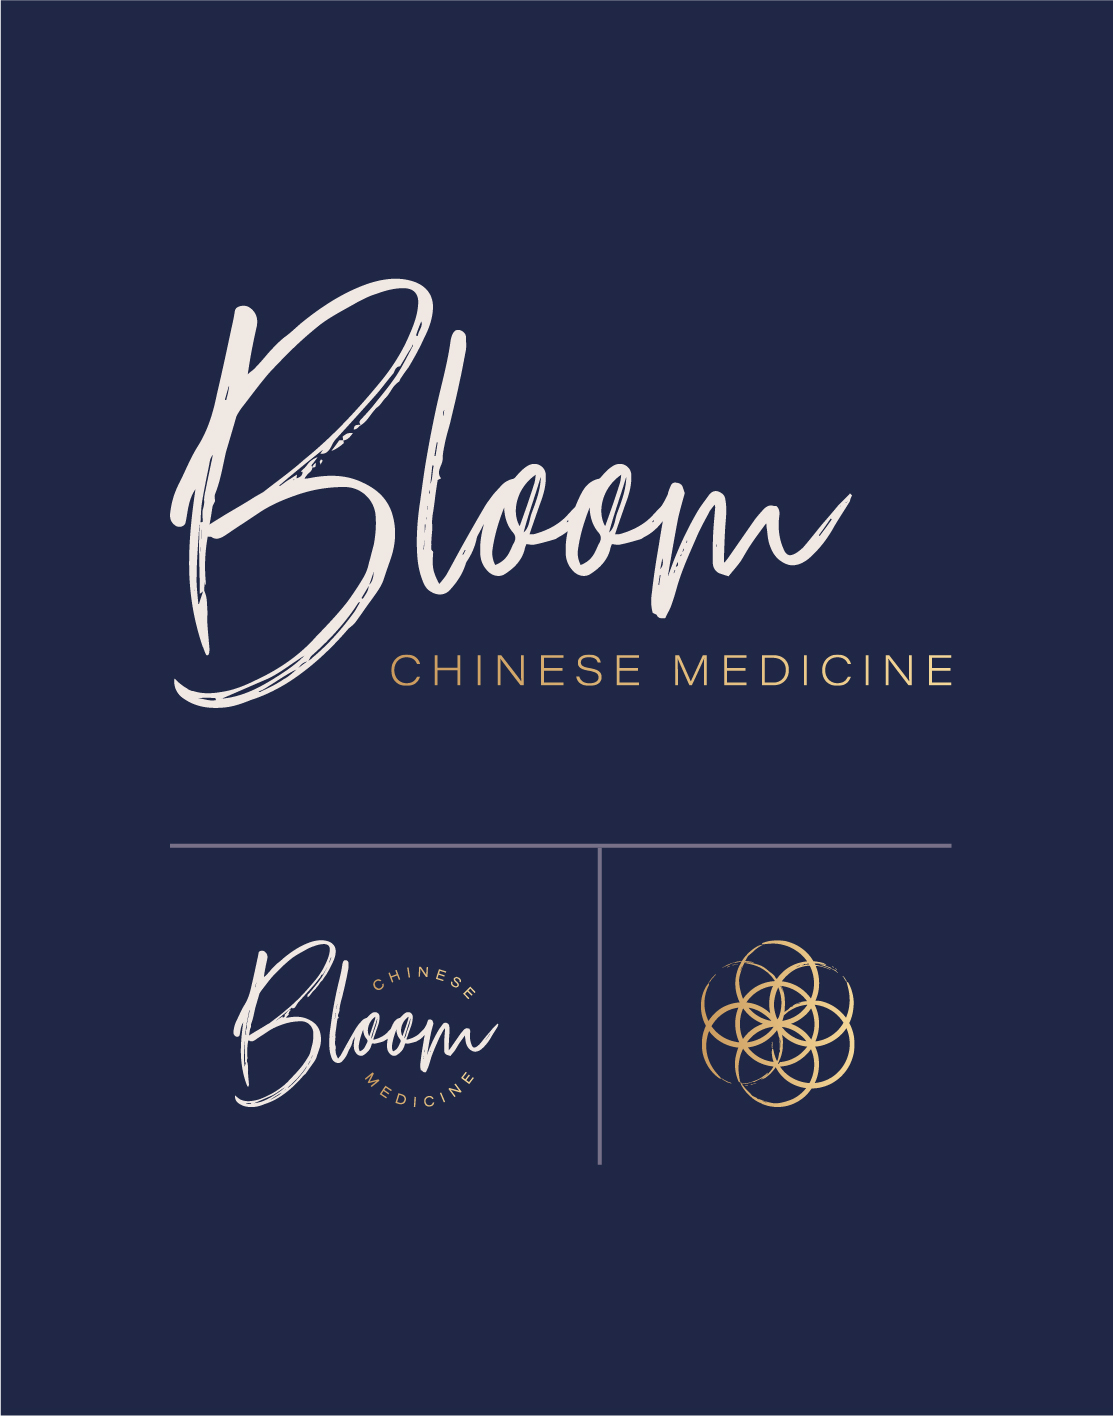 The Bloom logo is inspired by strength in femininity. - The handcrafted brush script is feminine and beautifully imperfect – it has charm. The rhythm of the letterforms leads the viewer along the wordmark, like the ebbs and flows of the tide.The brush script is balanced by a clear and minimal sans serif, which brings the seriousness of health back to the logo. It strikes a balance between logic and emotion.The deep midnight blue and pop of gold hint at the premium nature of the brand without being ostentatious or exclusionary.